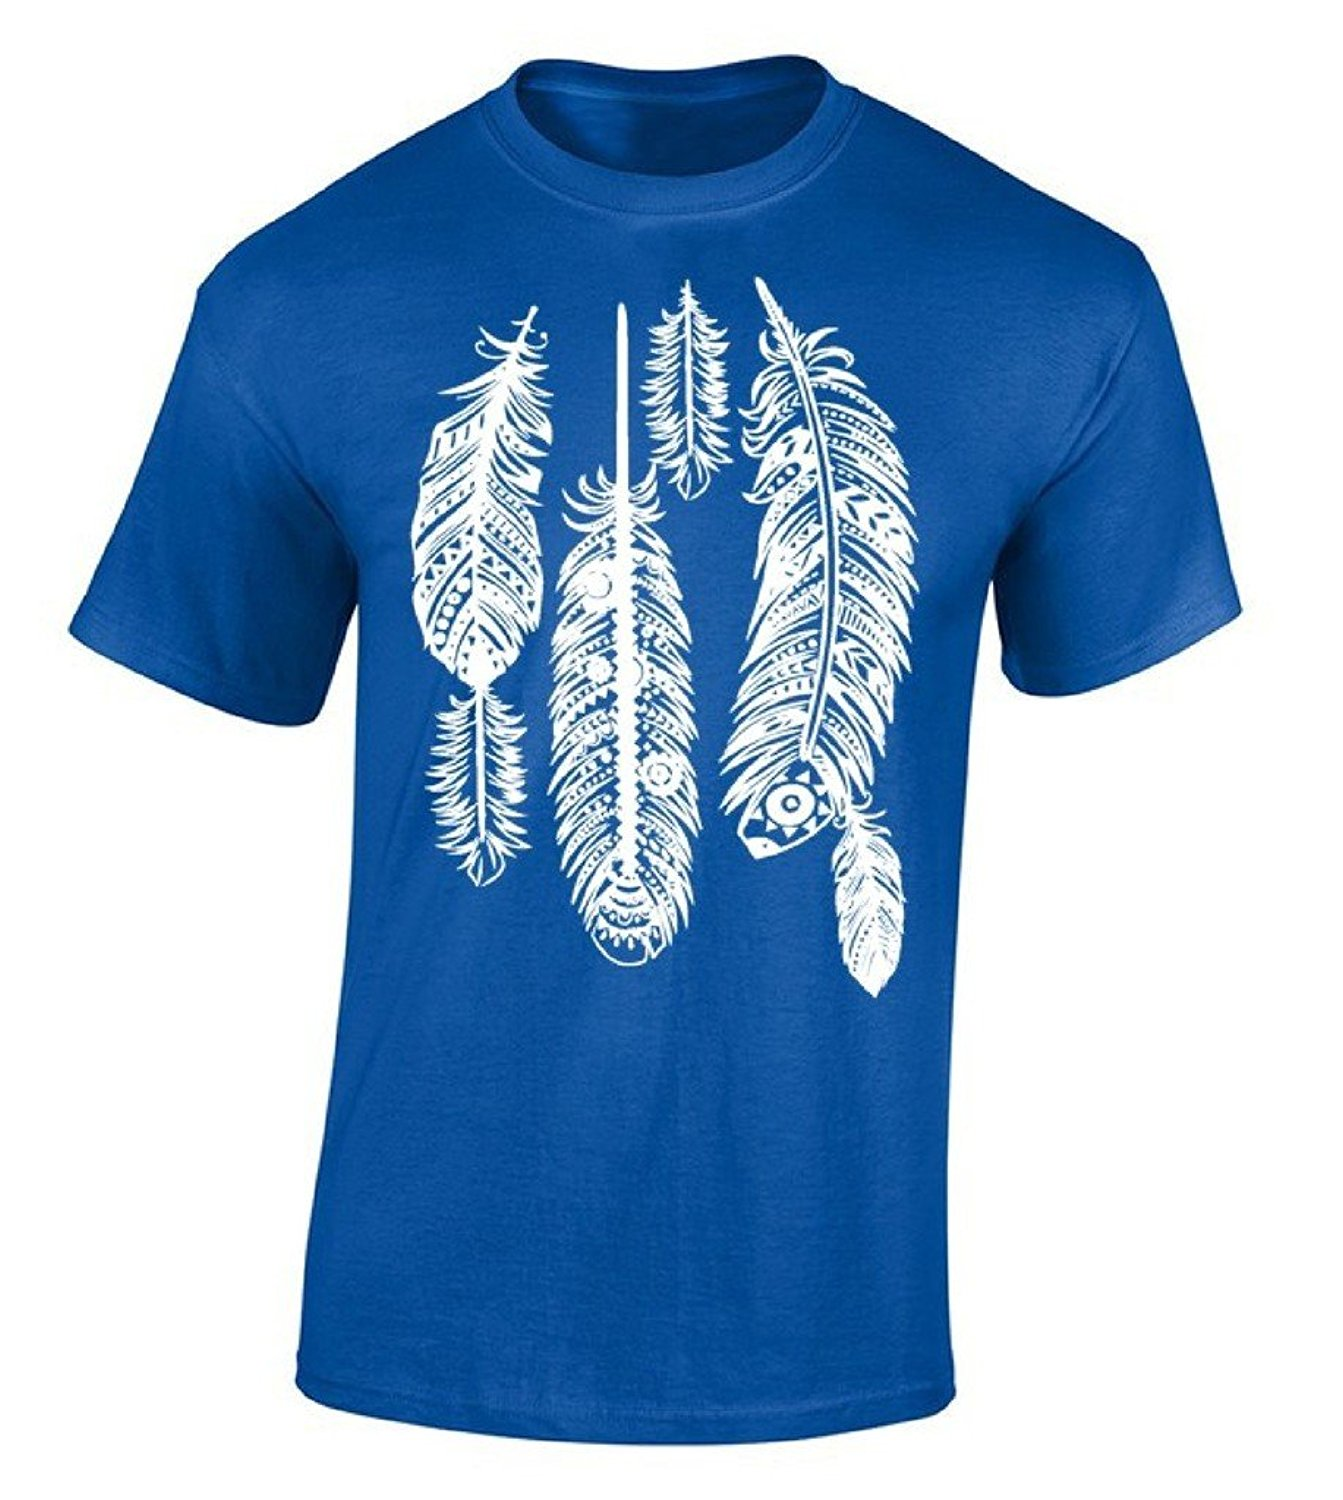 Pop Cotton Tee Short Sleeve Top Crew Neck Mens Feathers White Native American Indian Tribal T Shirt